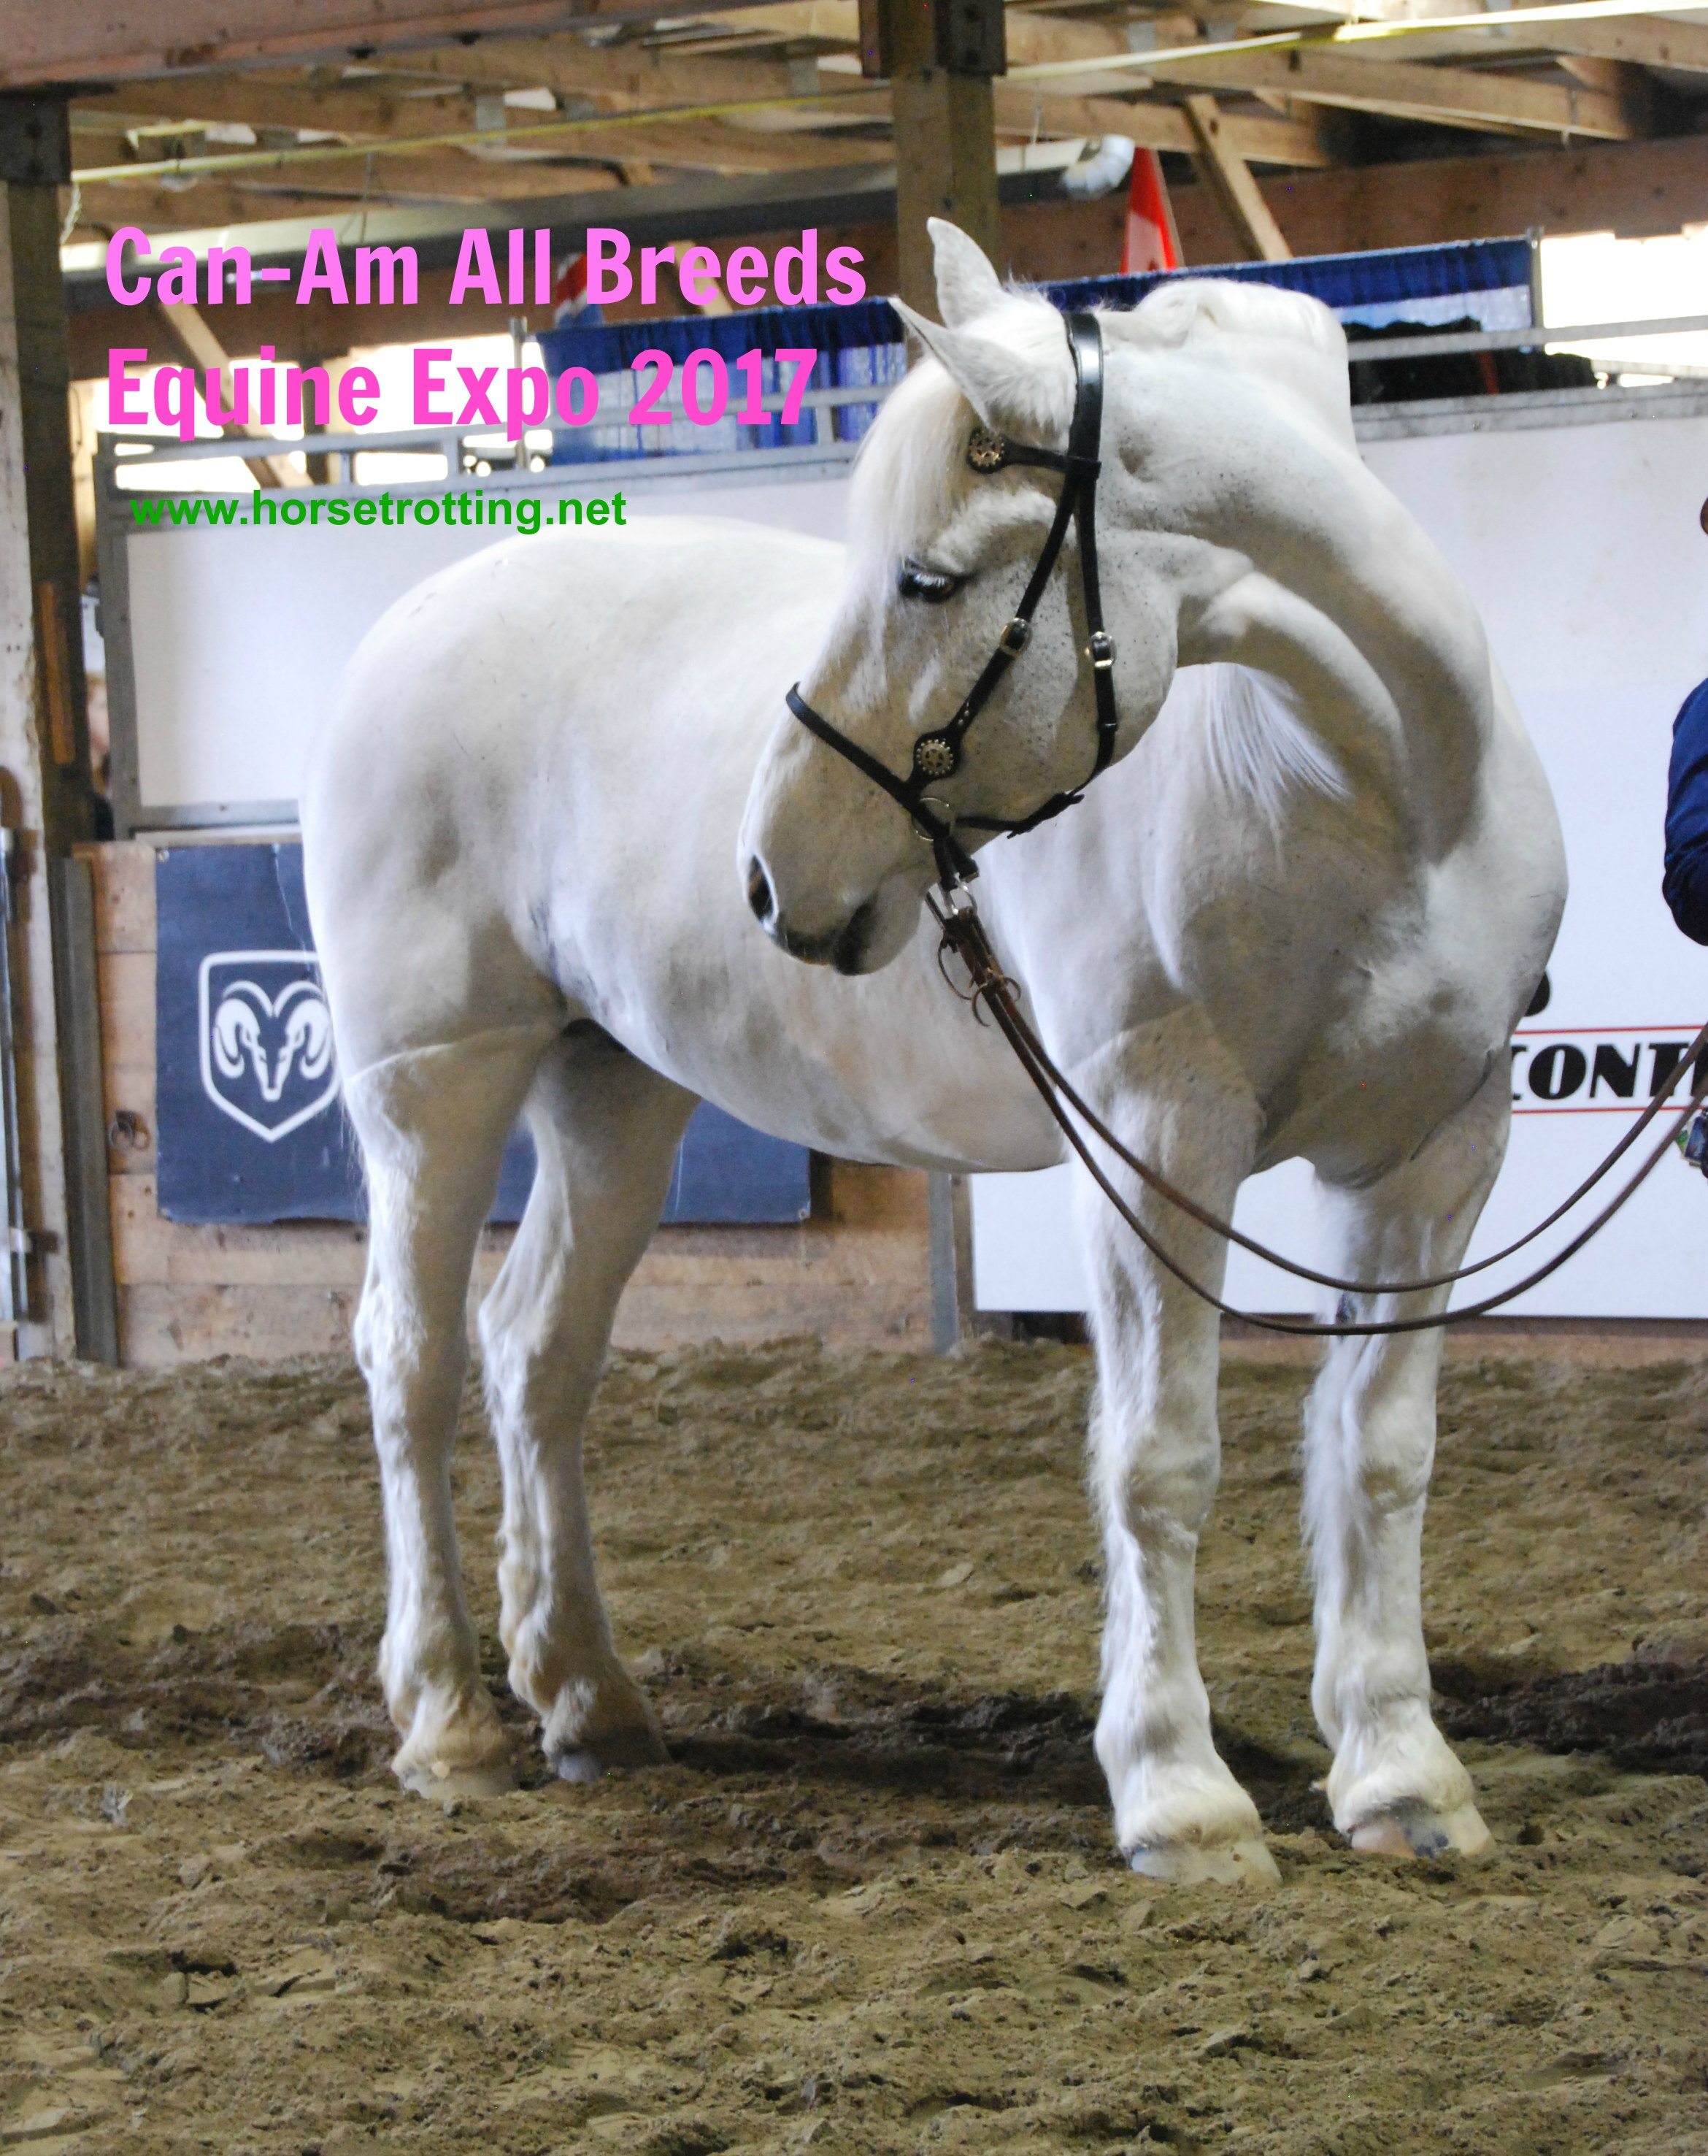 What's Happening in Markham? The Can-Am All Breeds Equine Expo 2017